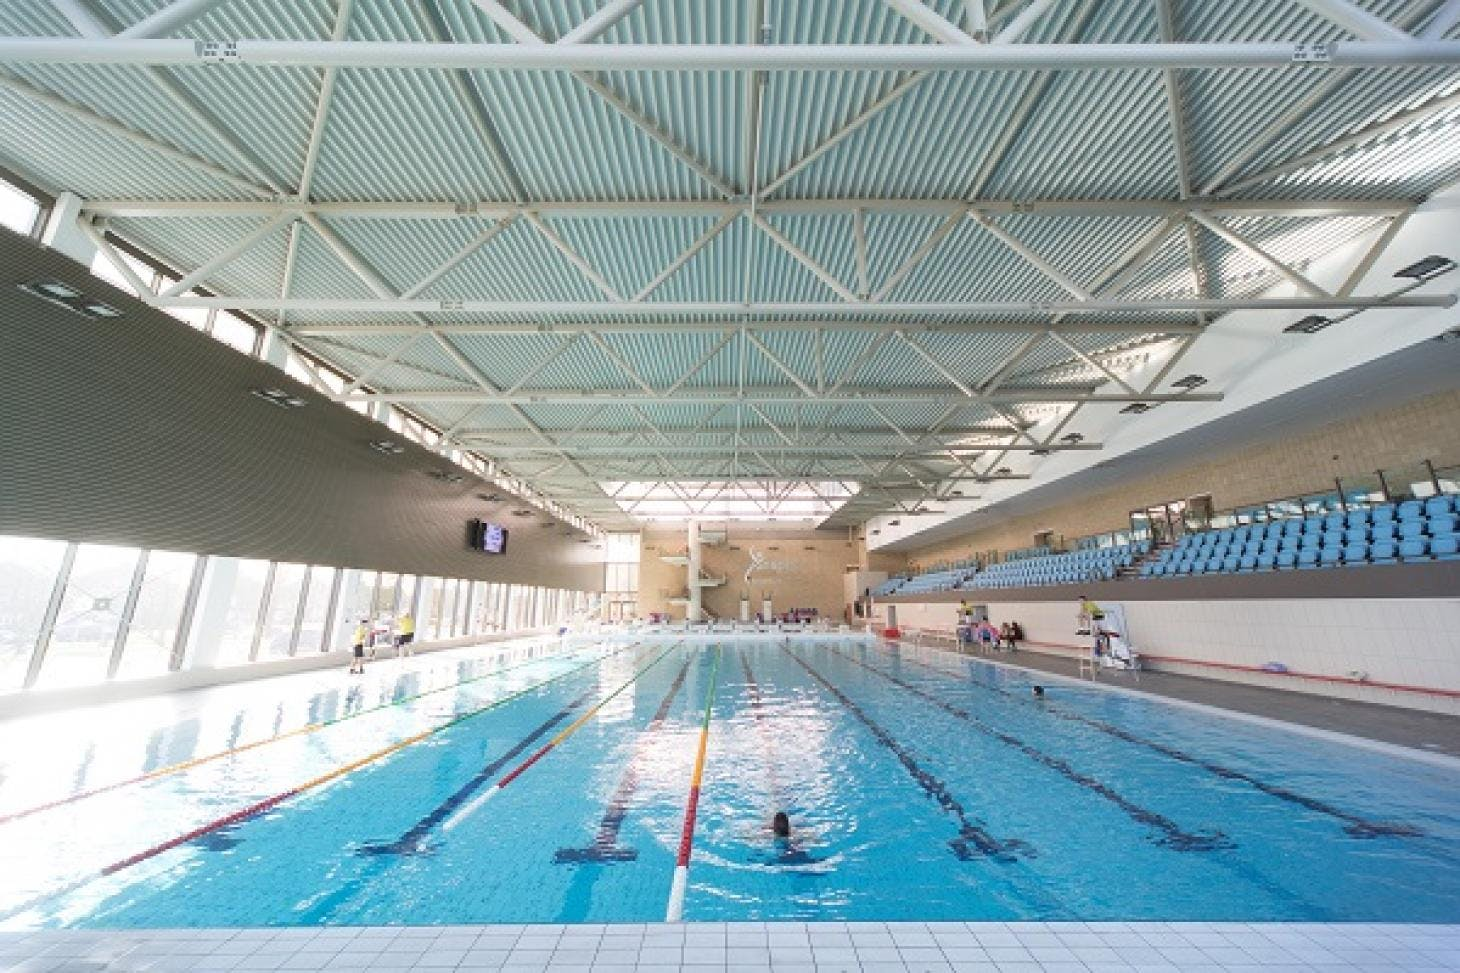 Inspire: Luton Sports Village Indoor swimming pool